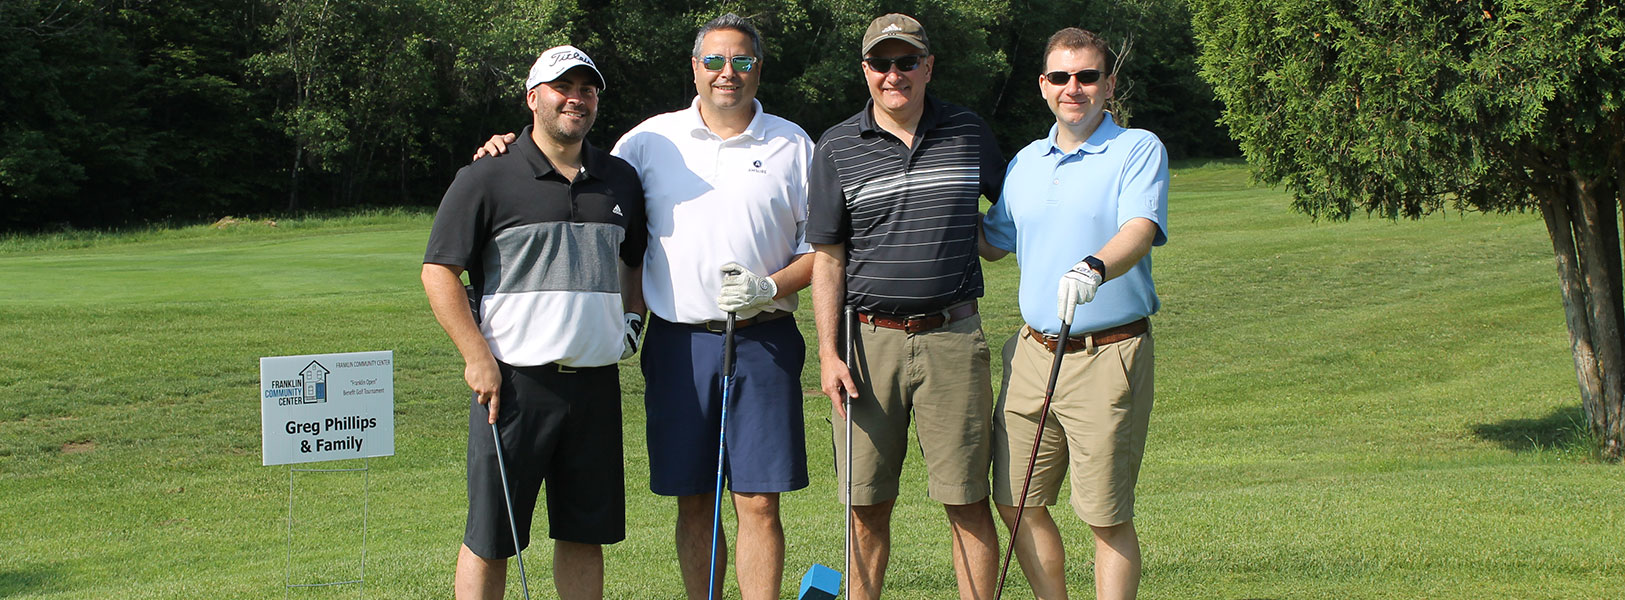 Foursome of Golfers at the Frankin Community Center's Annual Golf Tournament & Fundraiser